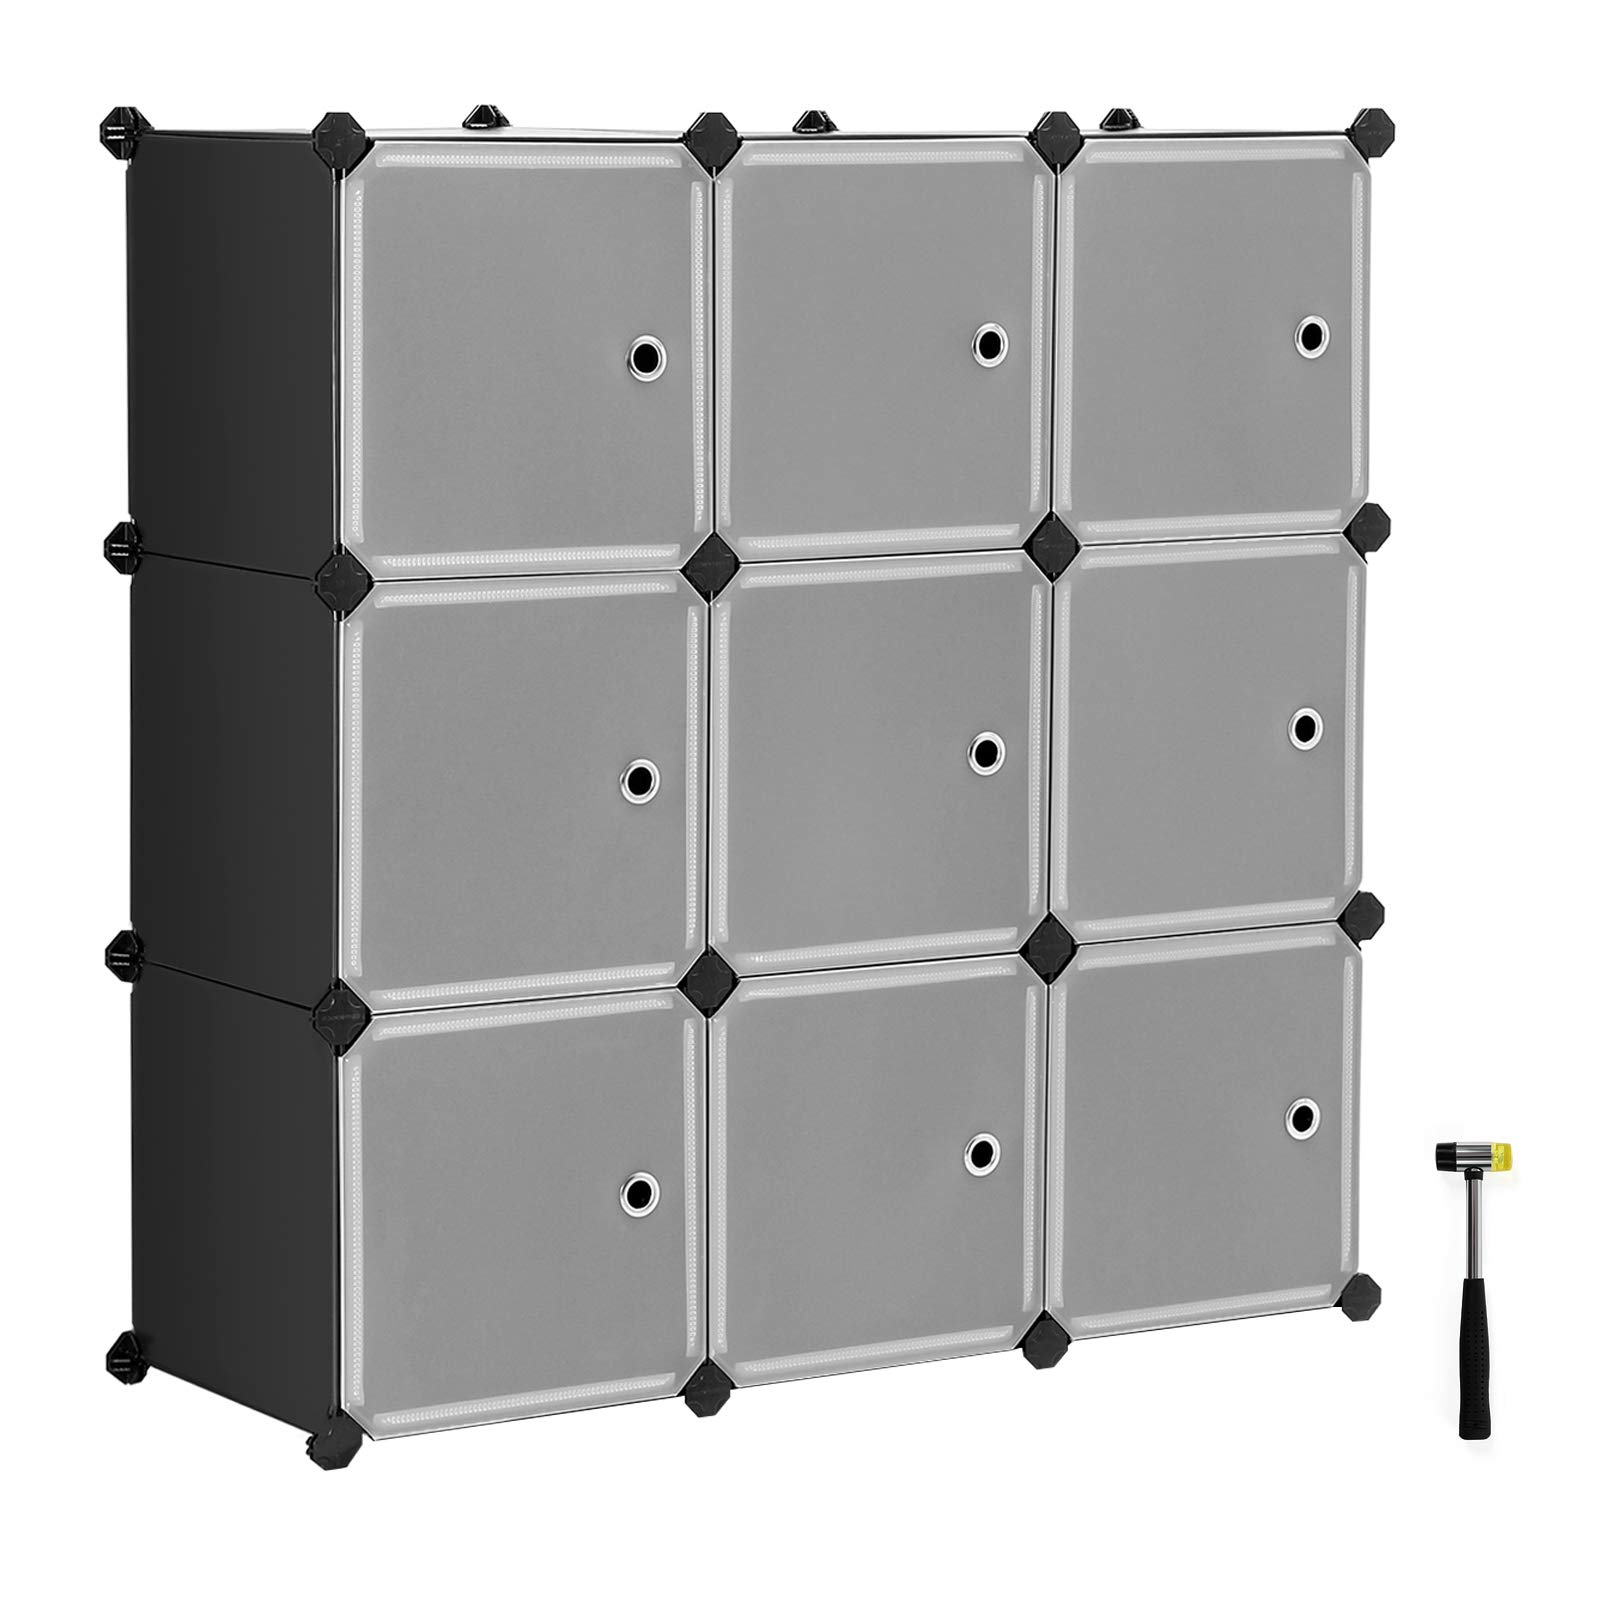 SONGMICS Cube Storage Organizer, 9-Cube DIY Plastic Closet Cabinet, Modular Bookcase, Storage Shelving with Doors for Bedroom, Living Room, Office, 36.6 L x 12.2 W x 36.6 H Inches Black ULPC33HV1 by SONGMICS